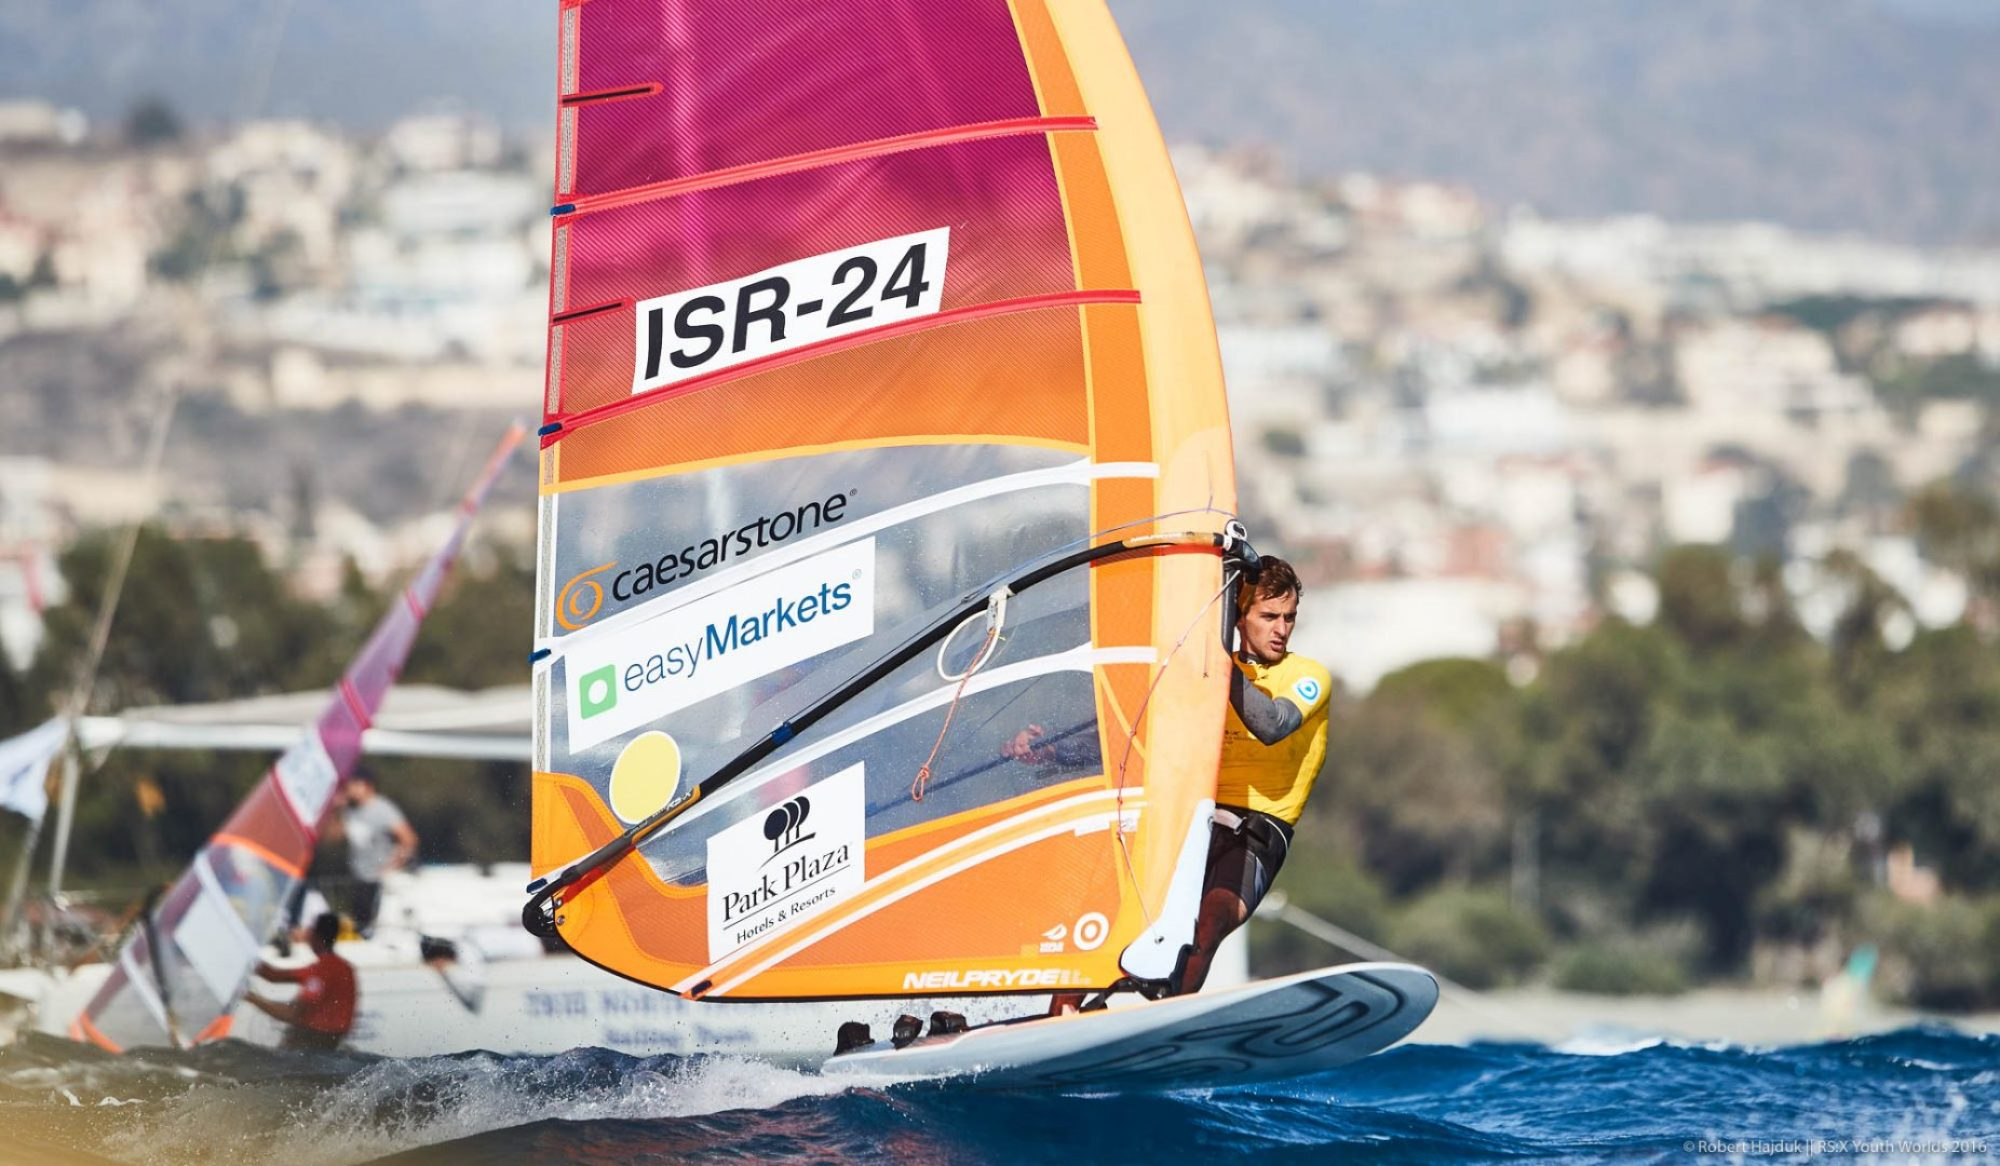 Day 1 at the 2016 RS:X Youth World Windsurfing Championship